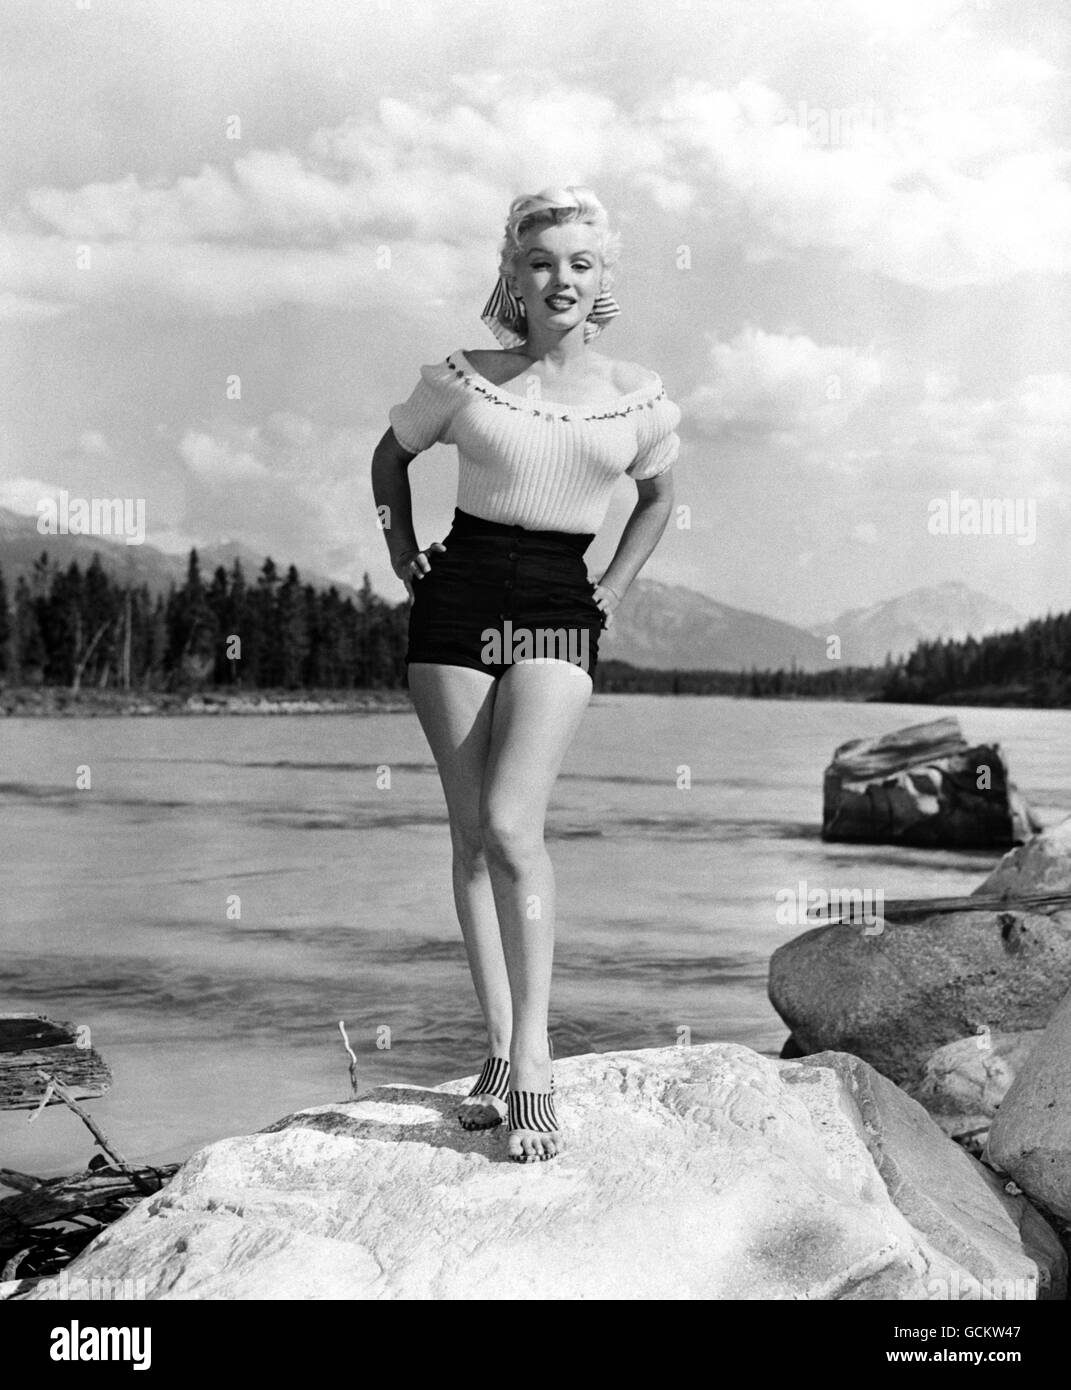 Film - Marilyn Monroe - Jasper National Park, Alberta, Canada. - Stock Image